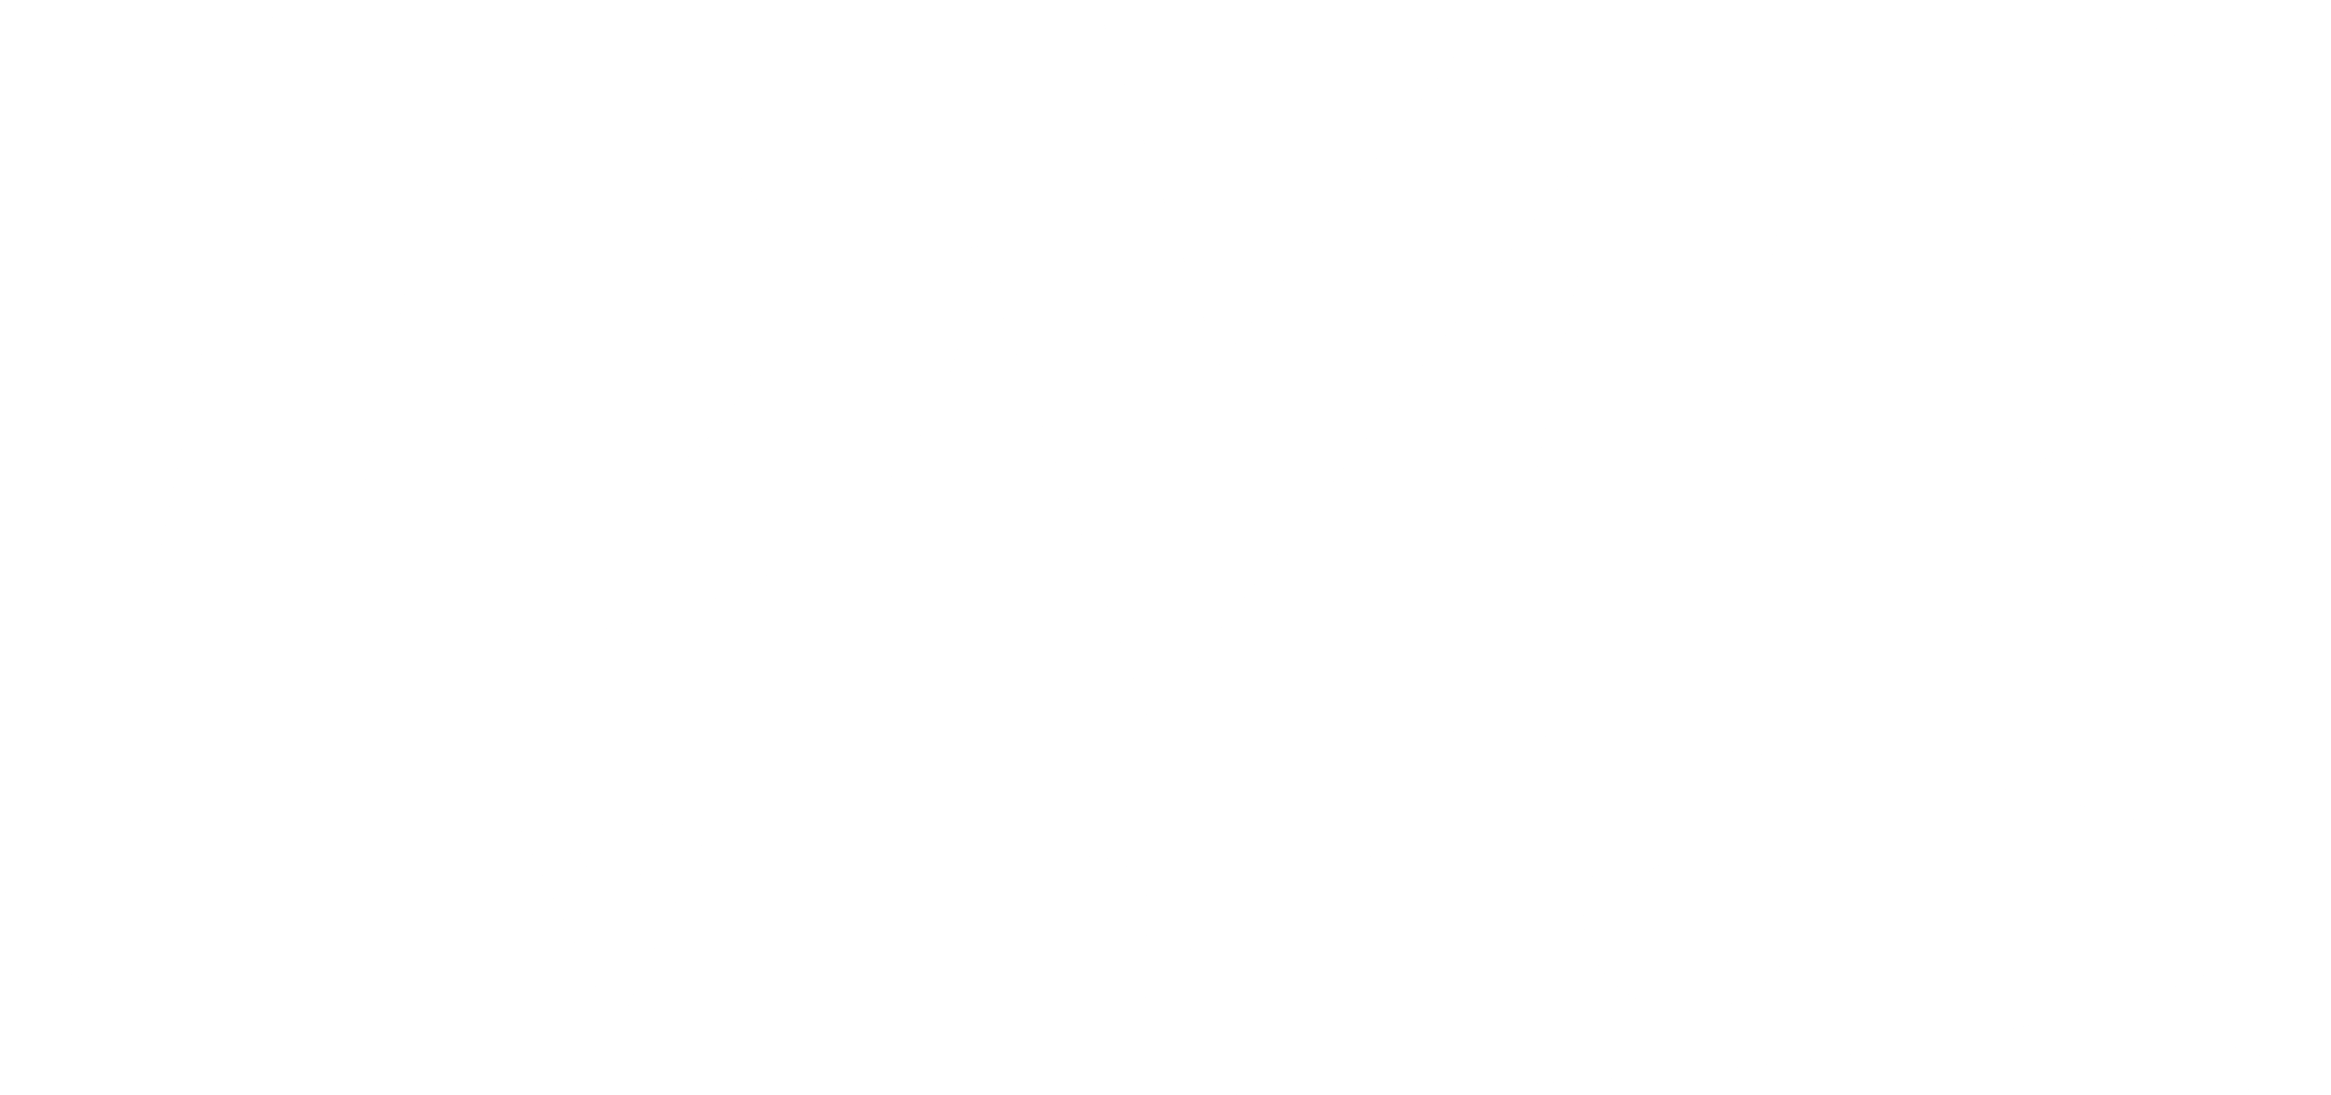 Download Dvd Video Logo Black And White.